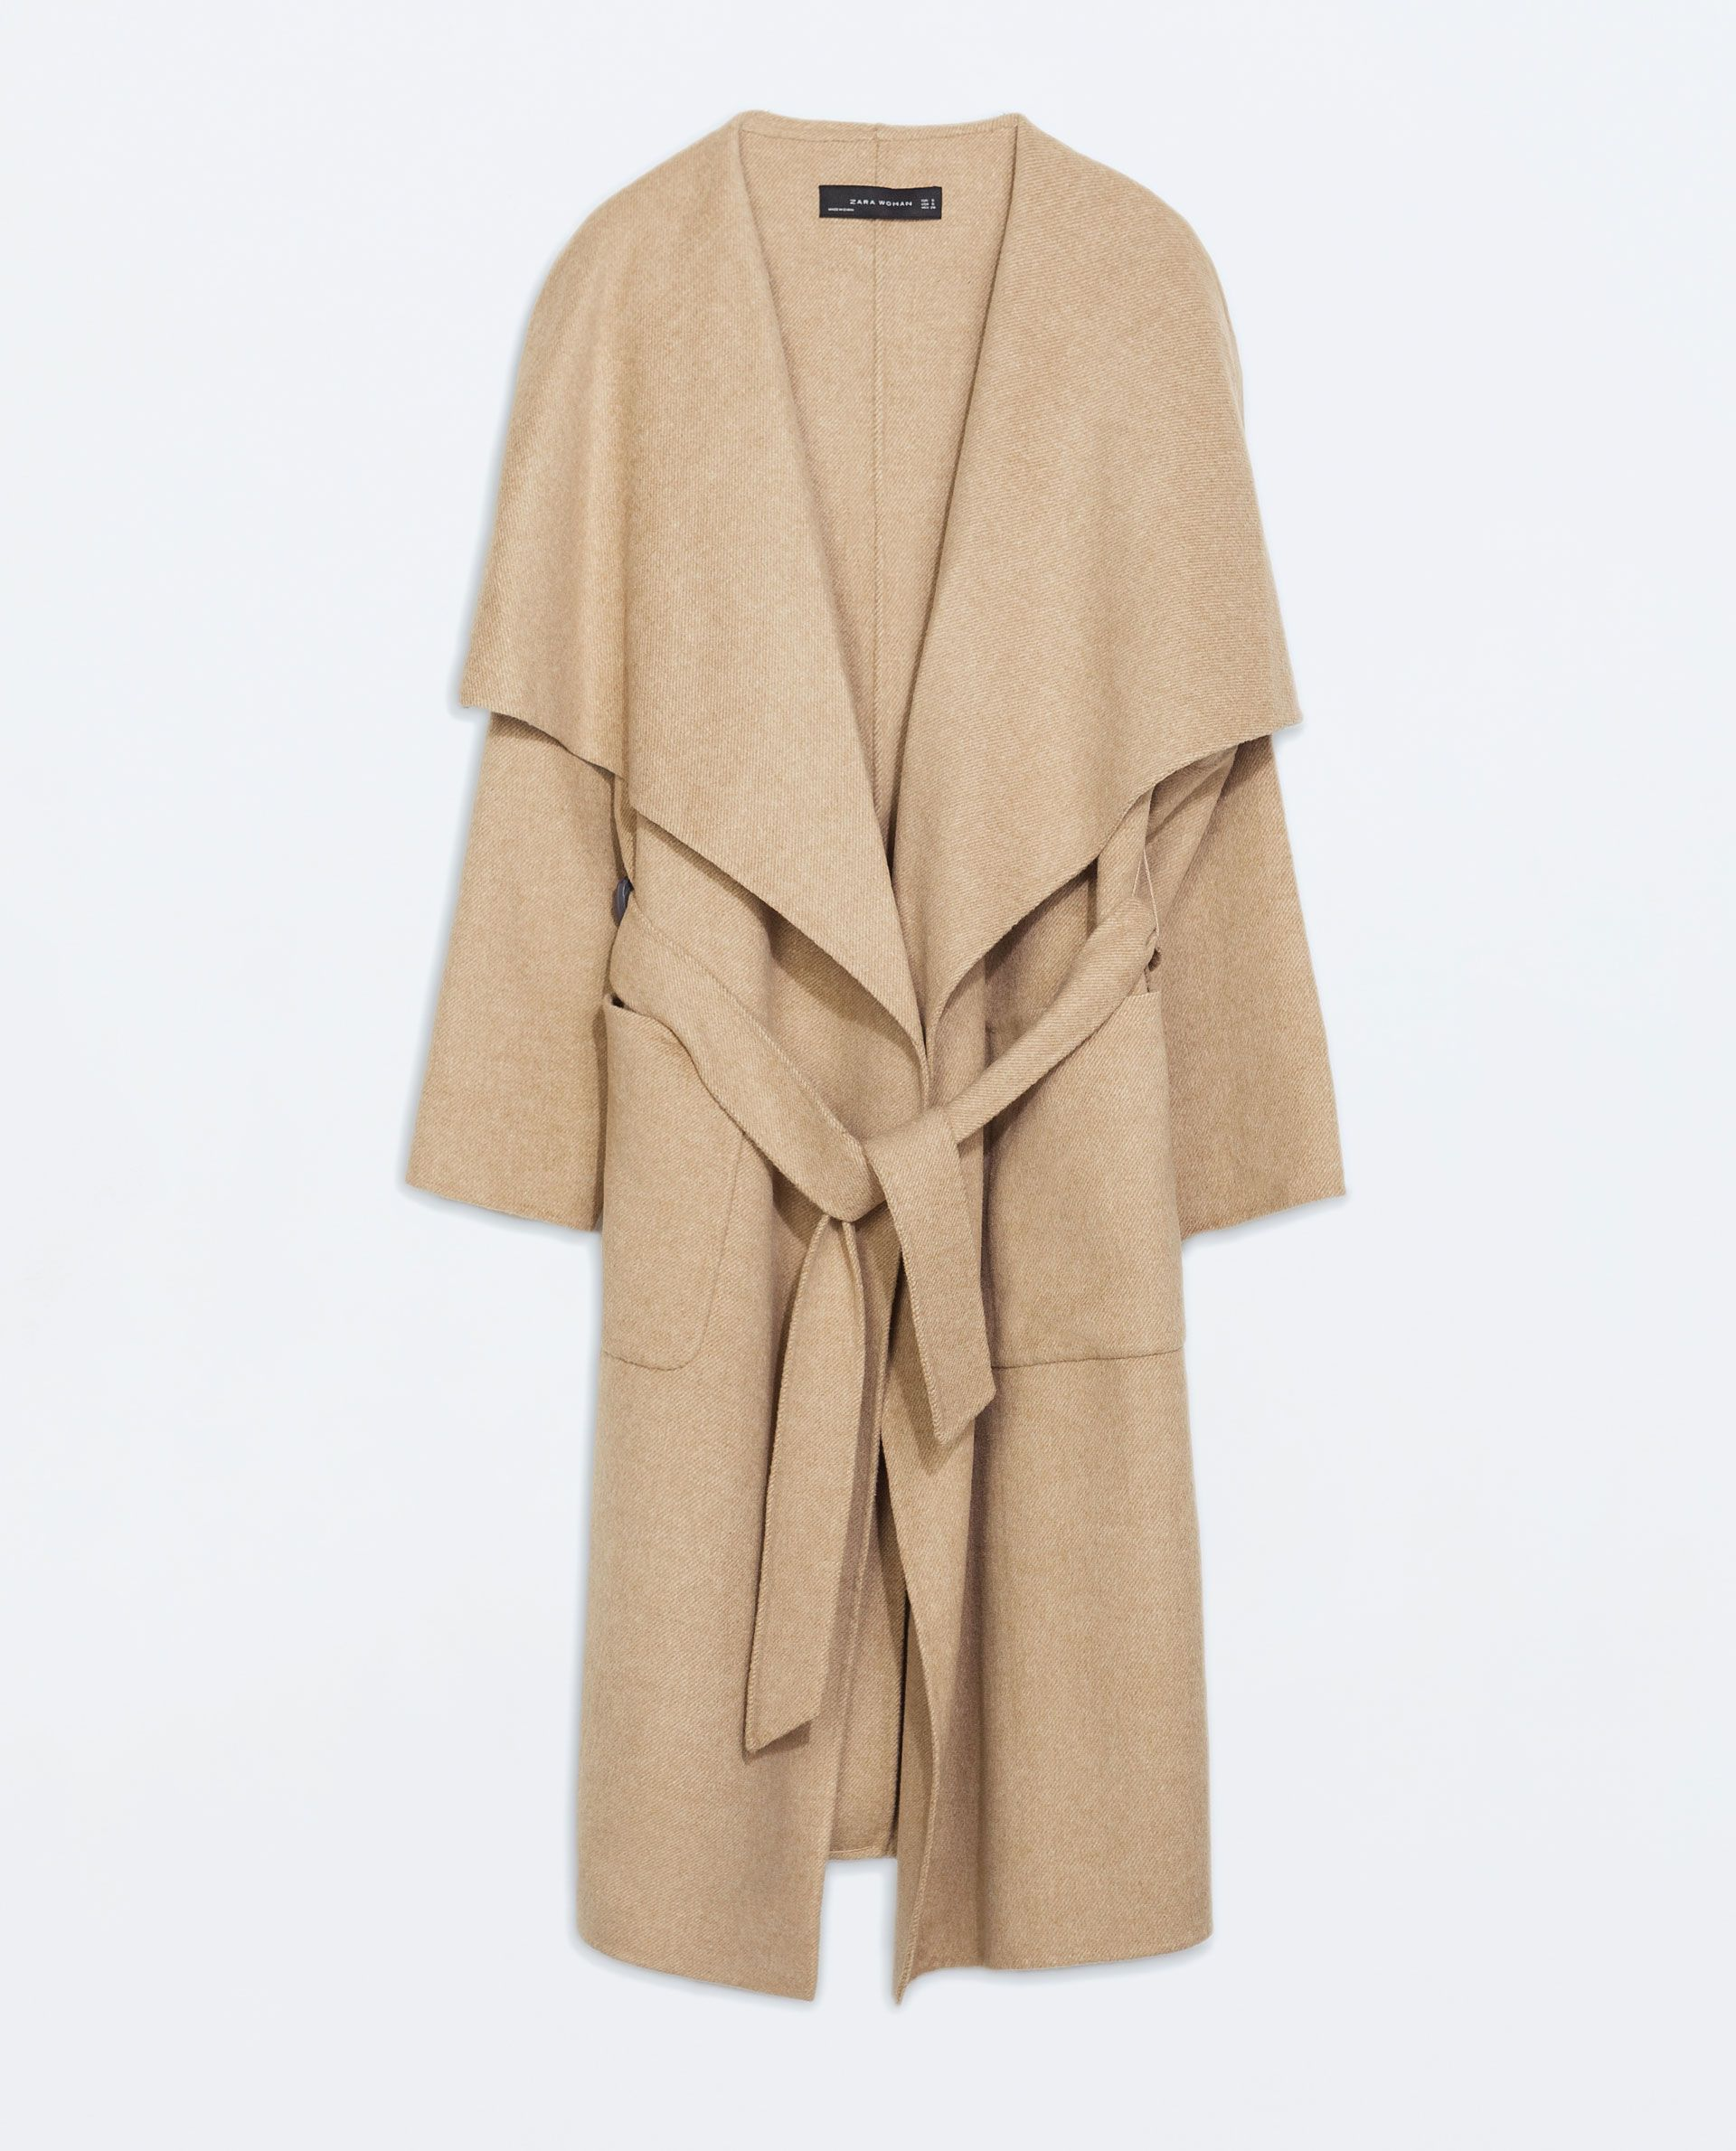 Zara Sale Long Coat Things To Wear Pinterest Manteau